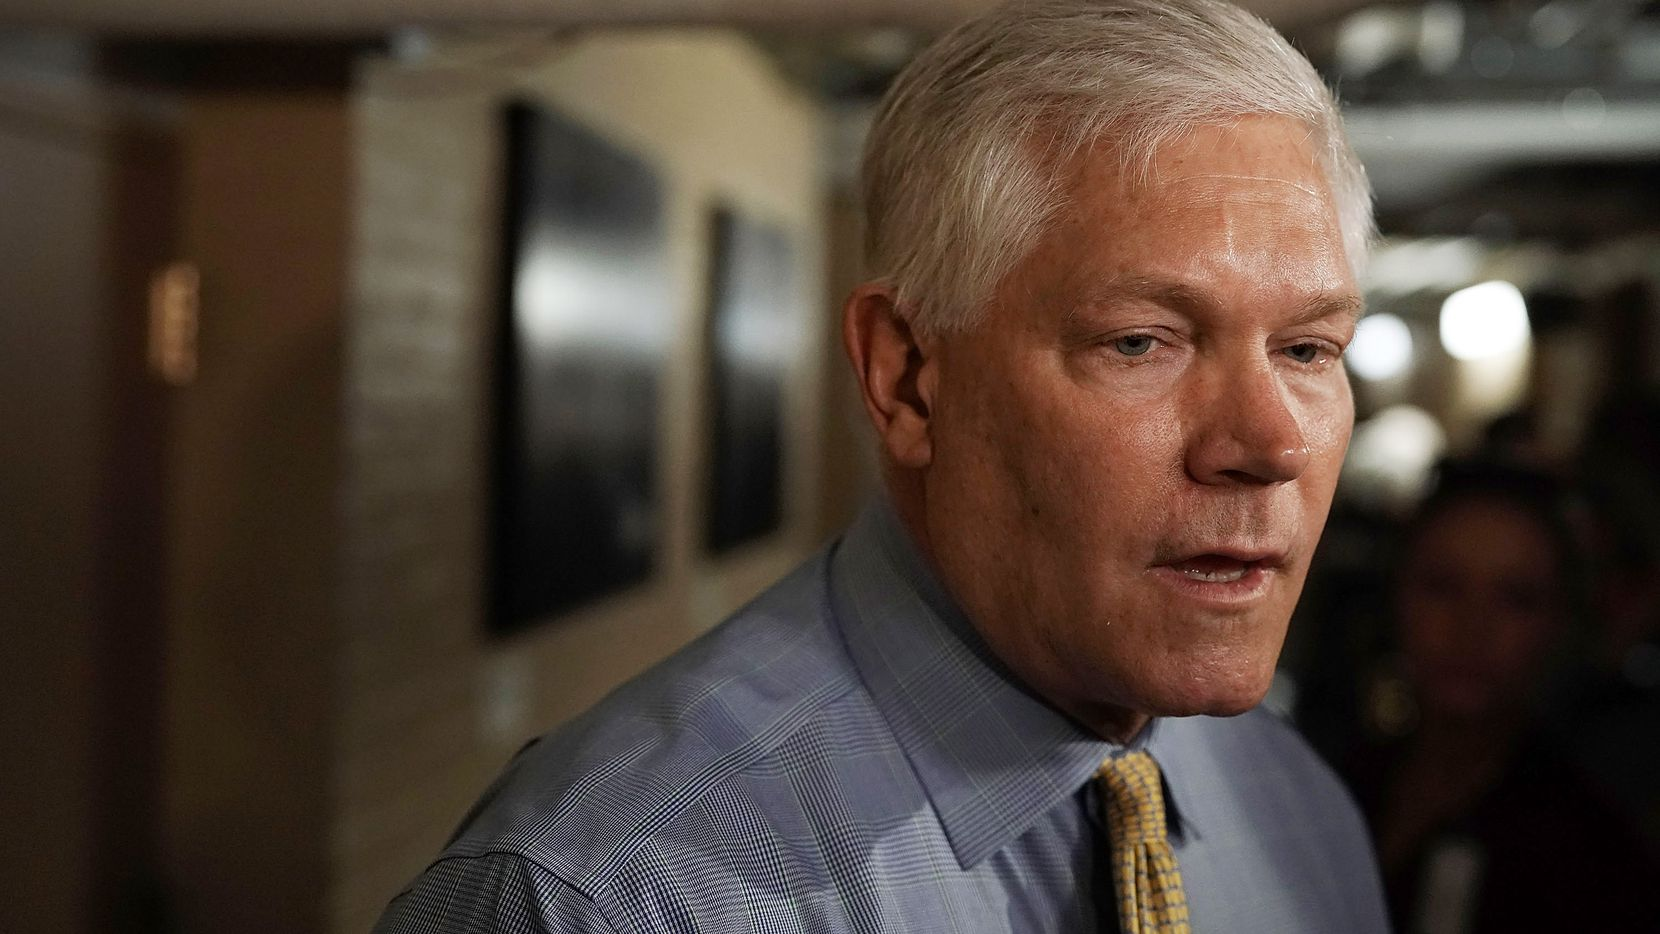 U.S. Rep. Pete Sessions, R-Dallas, speaks to members of the media as he arrives for a Republican conference meeting on Capitol Hill.